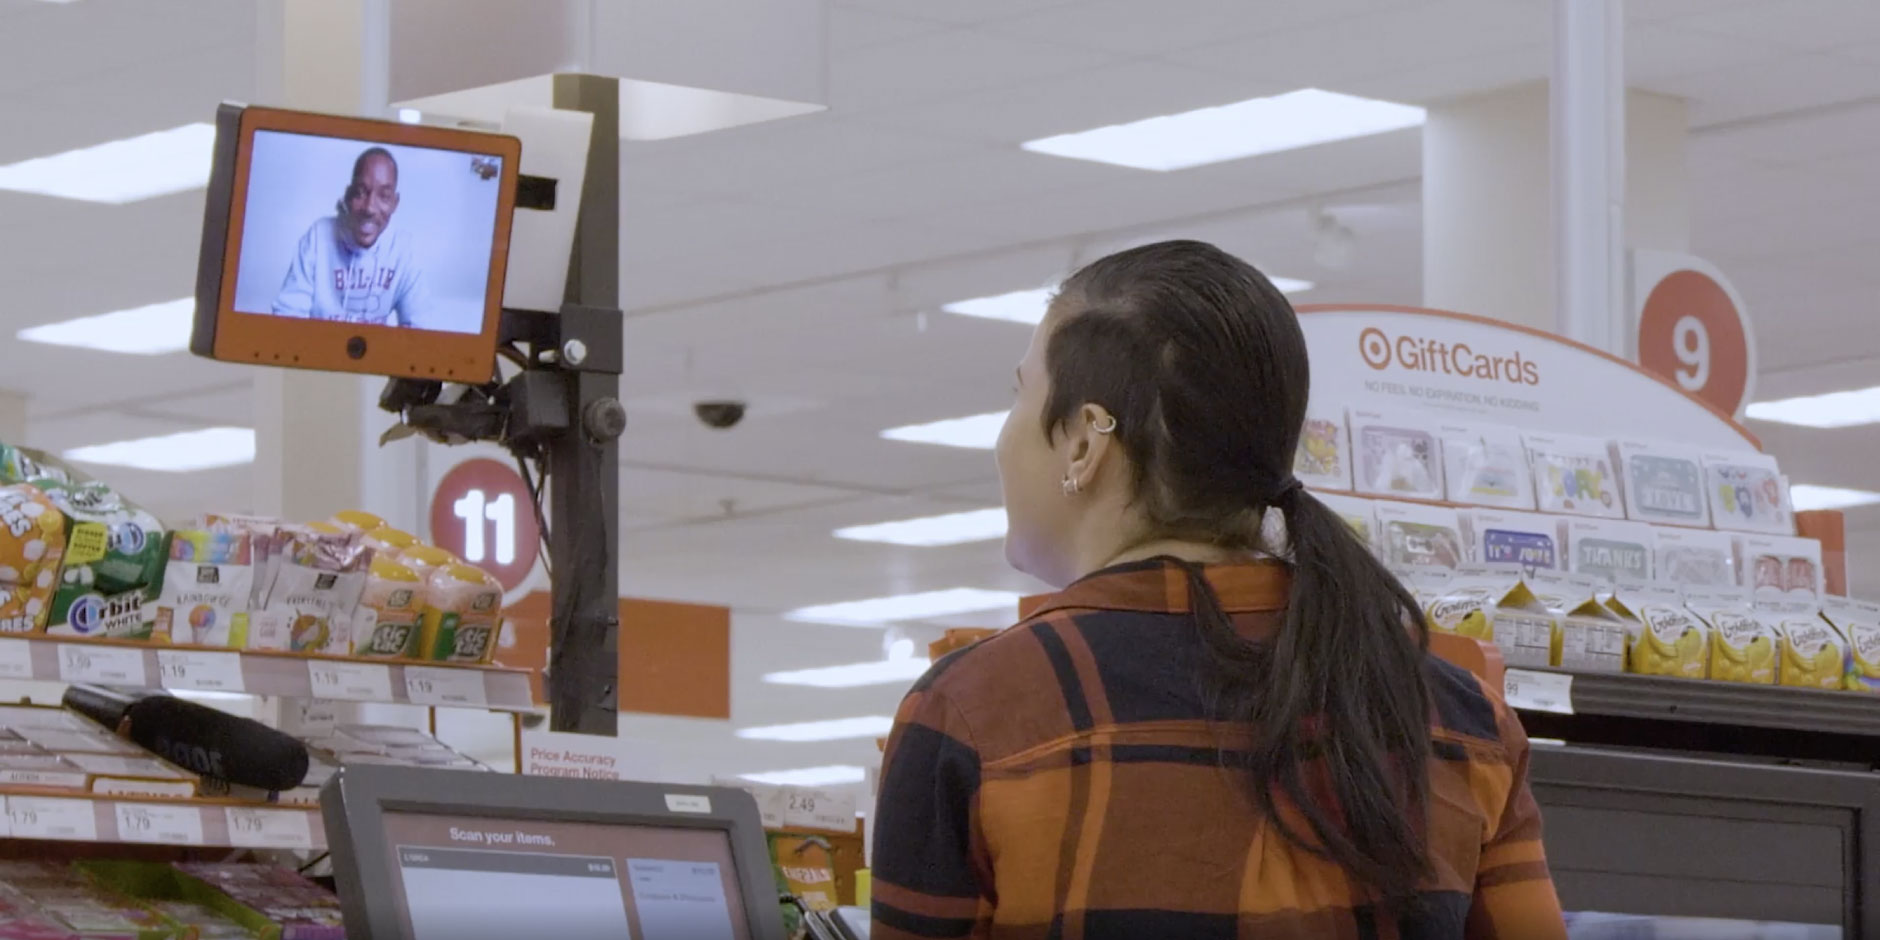 A woman smiles at a self-checkout screen, where Will Smith has magically appeared